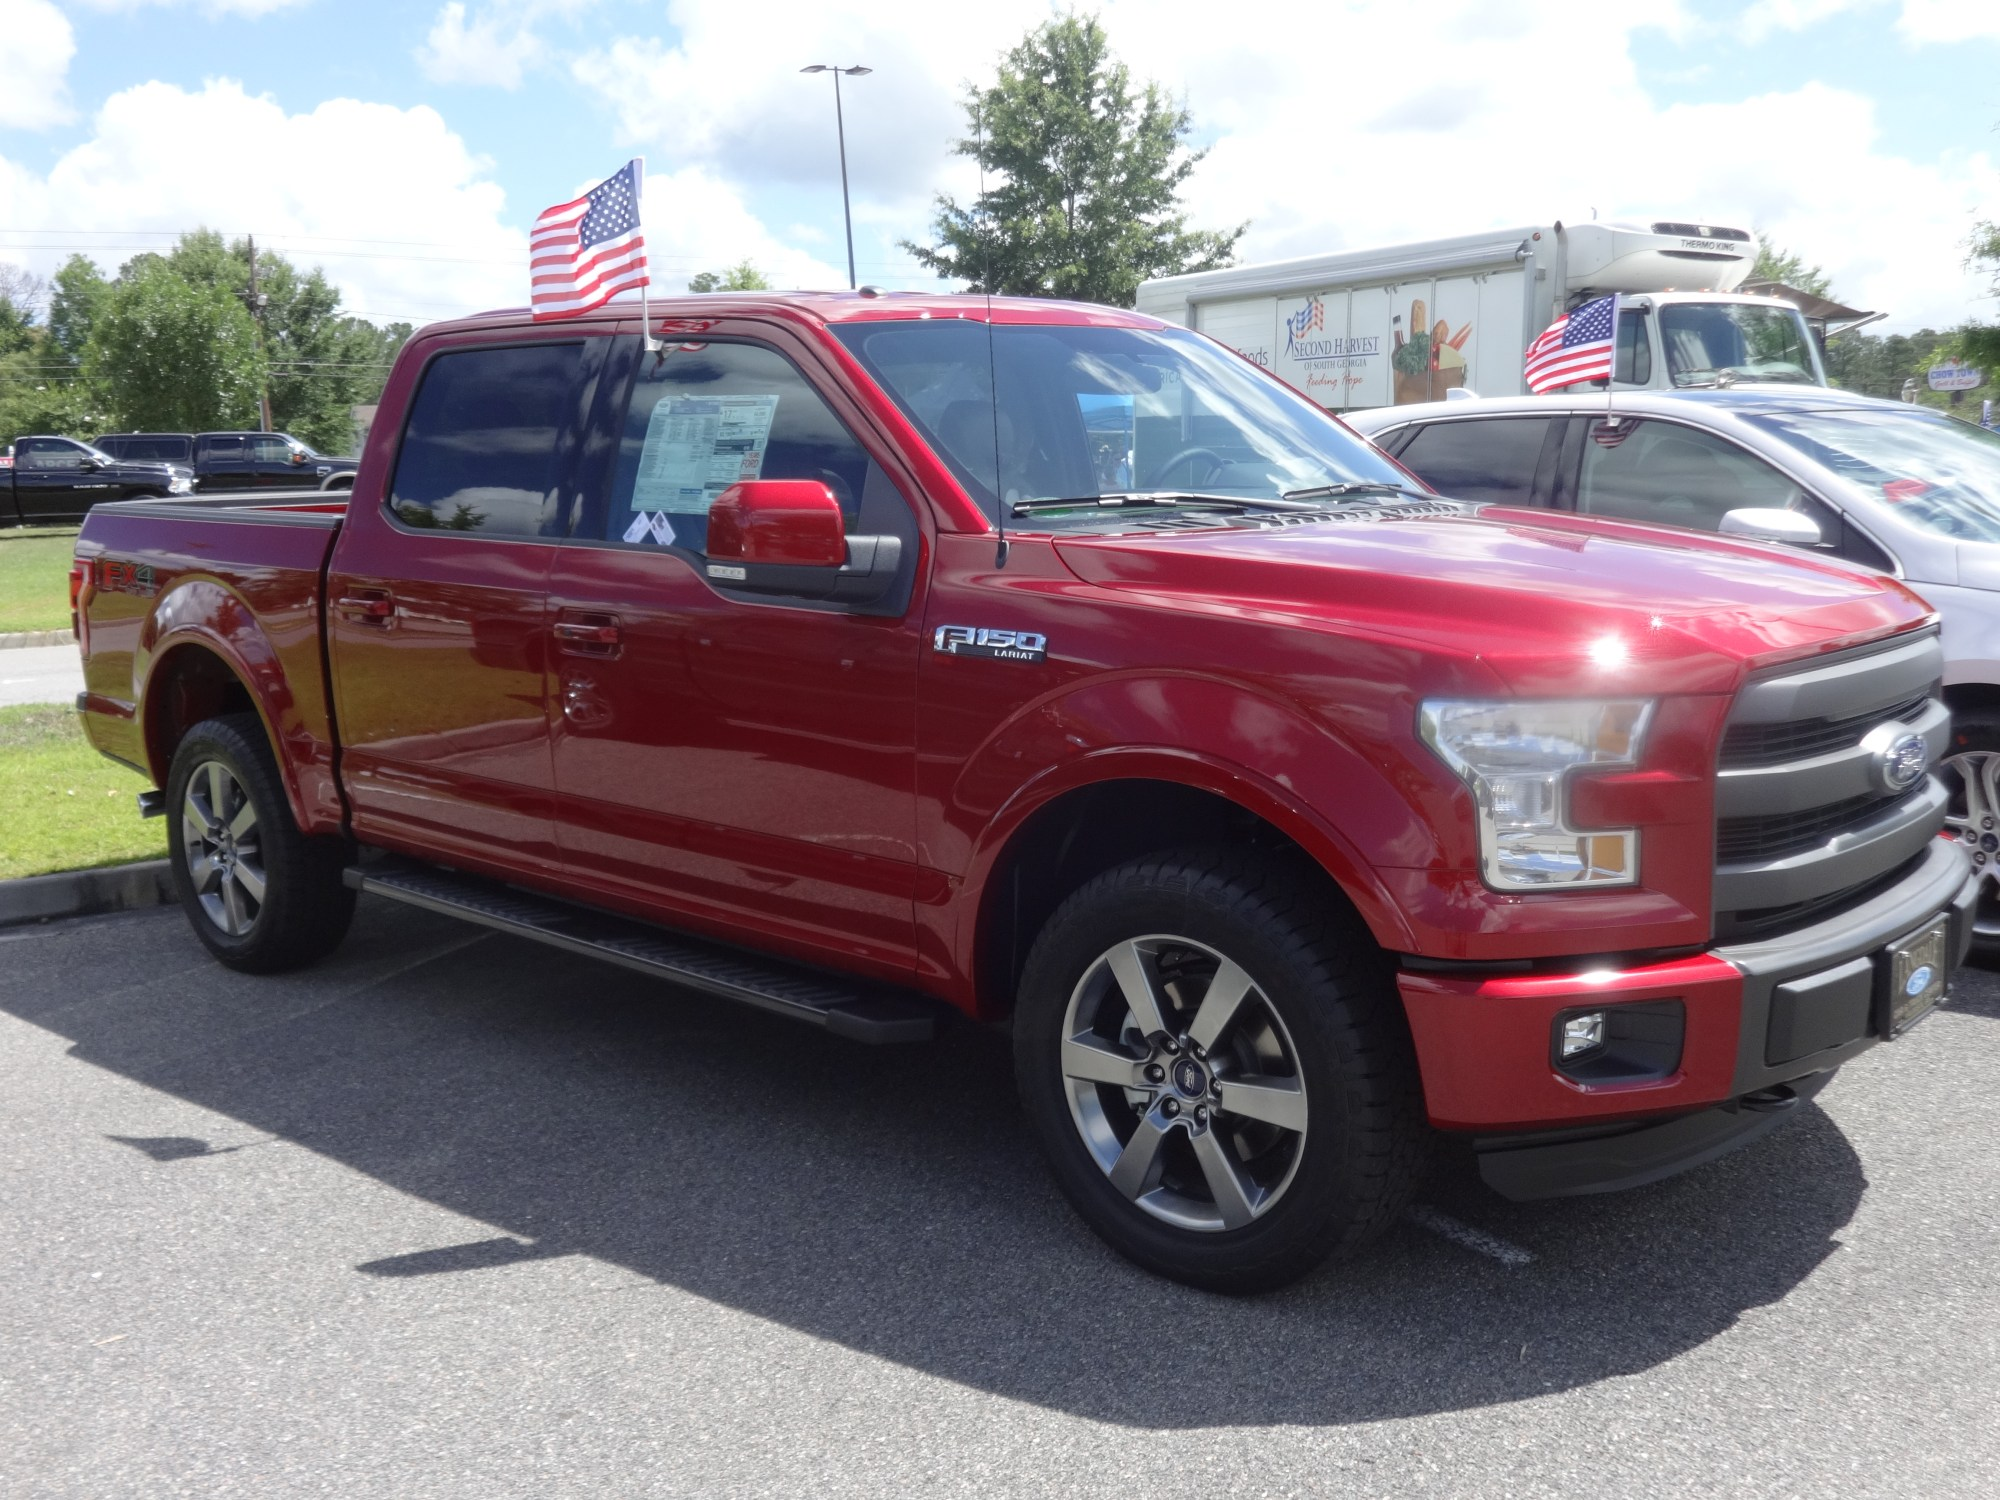 hight resolution of file 2015 ford f150 lariat 9th annual super cruise in valdosta jpg